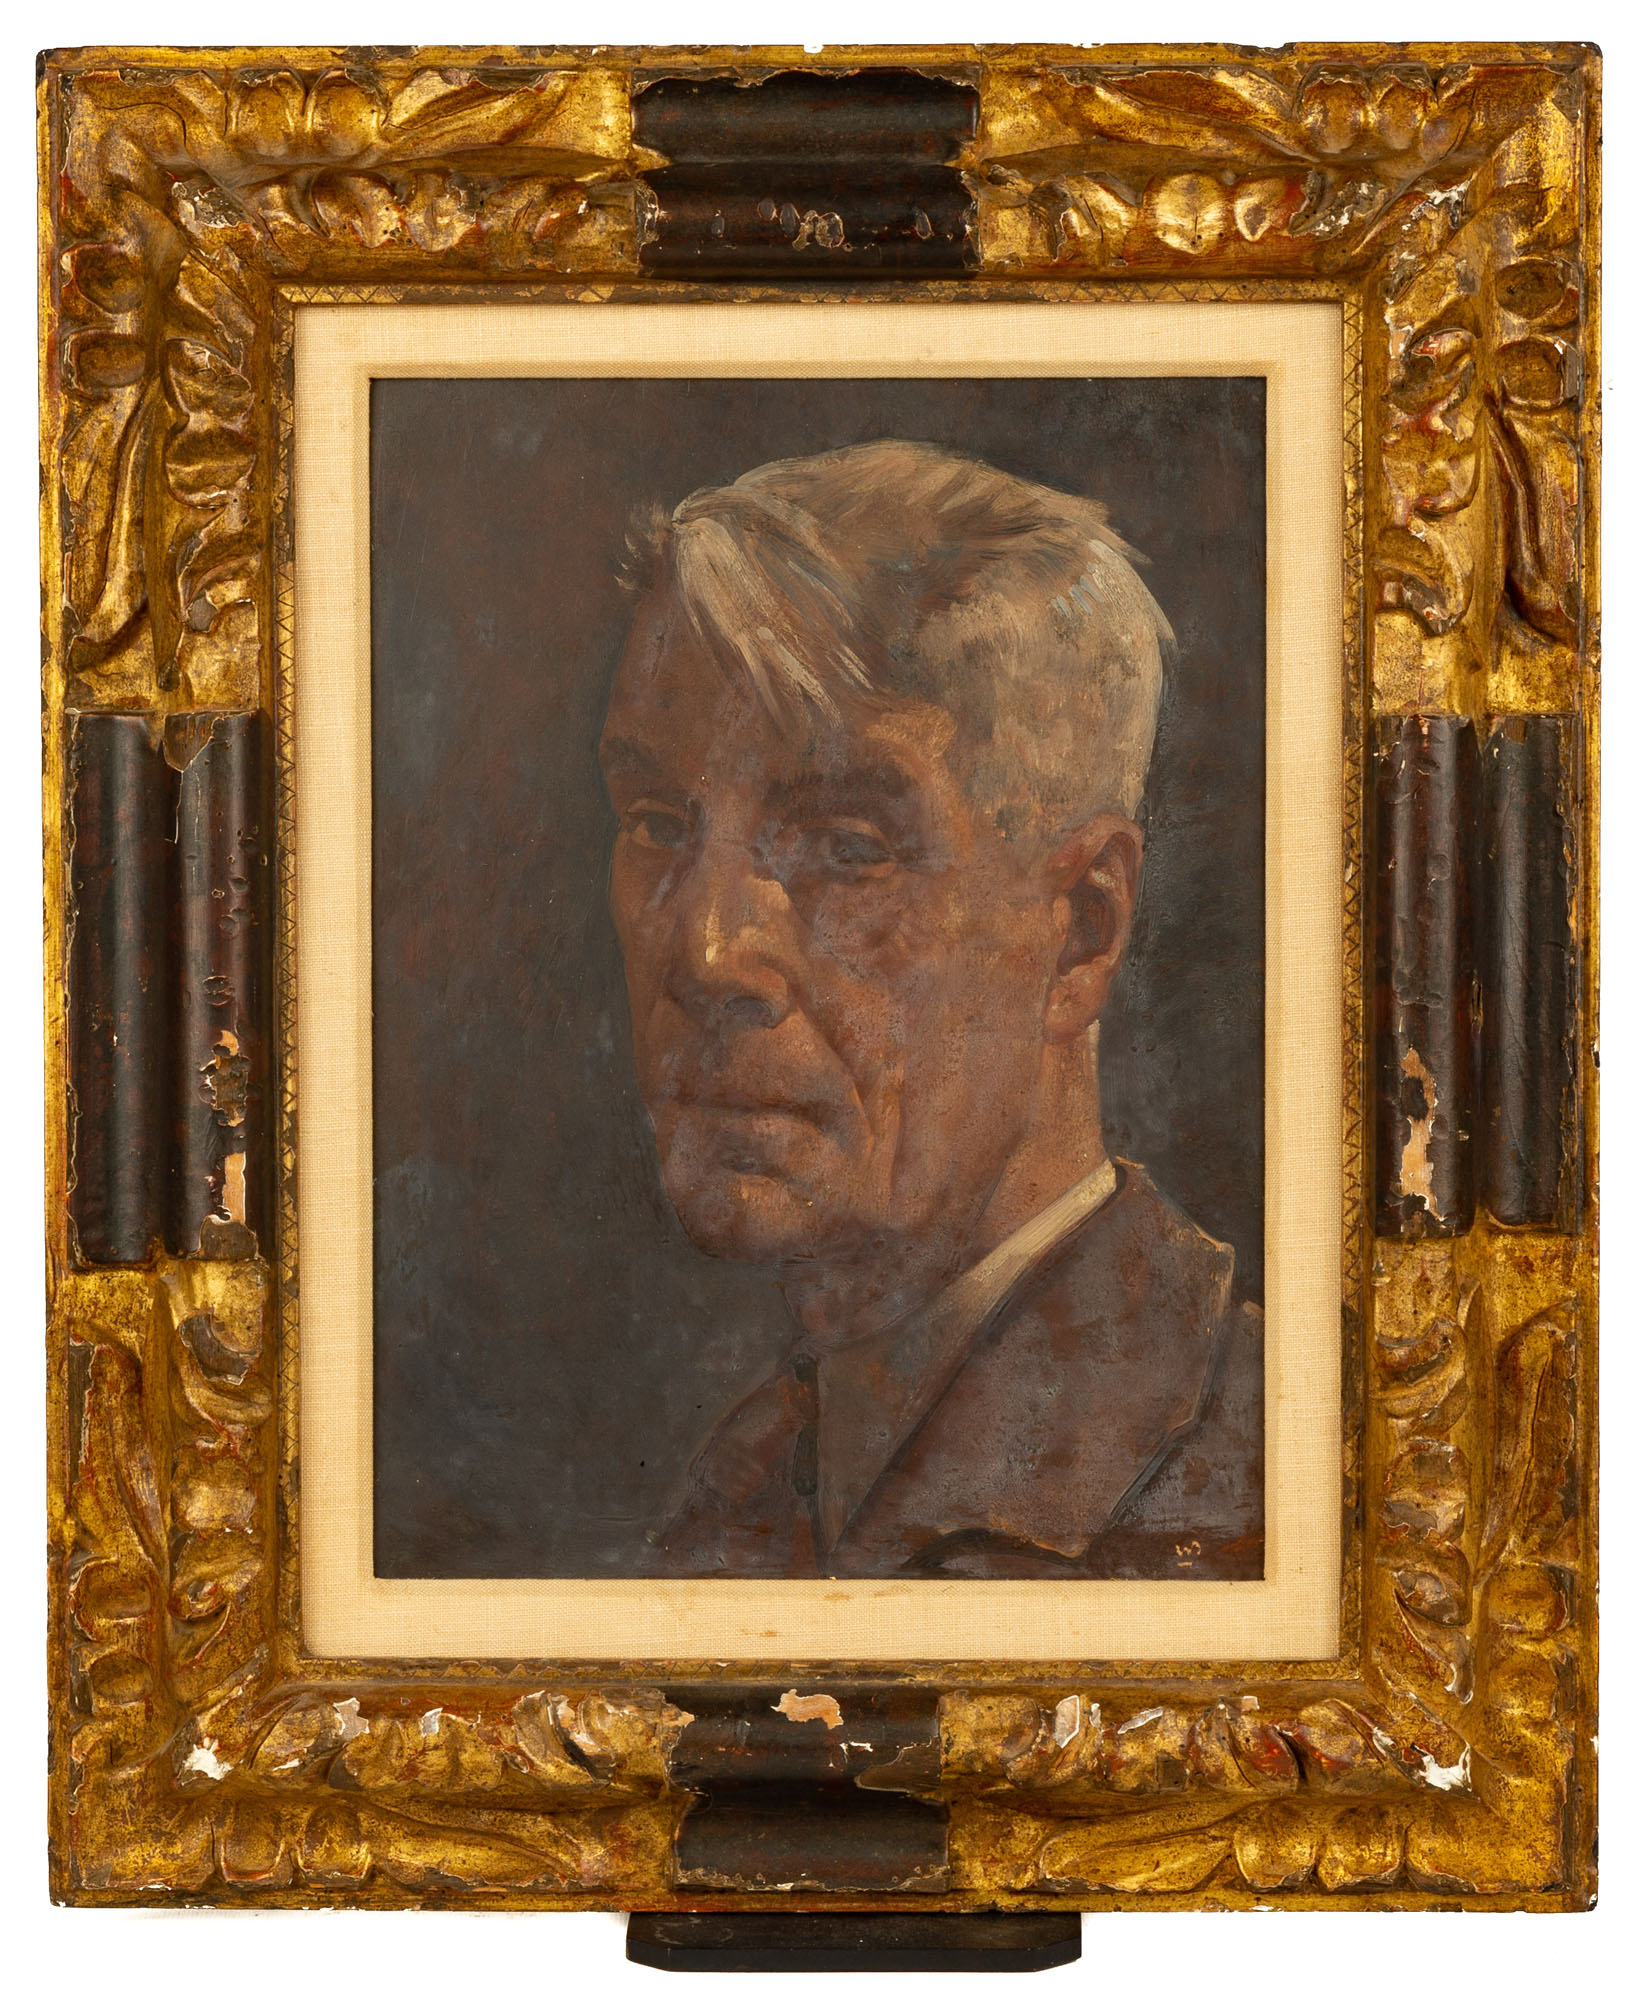 Lot 120 - Willem Van Den Berg (Dutch, 1886-1970) Self Portrait